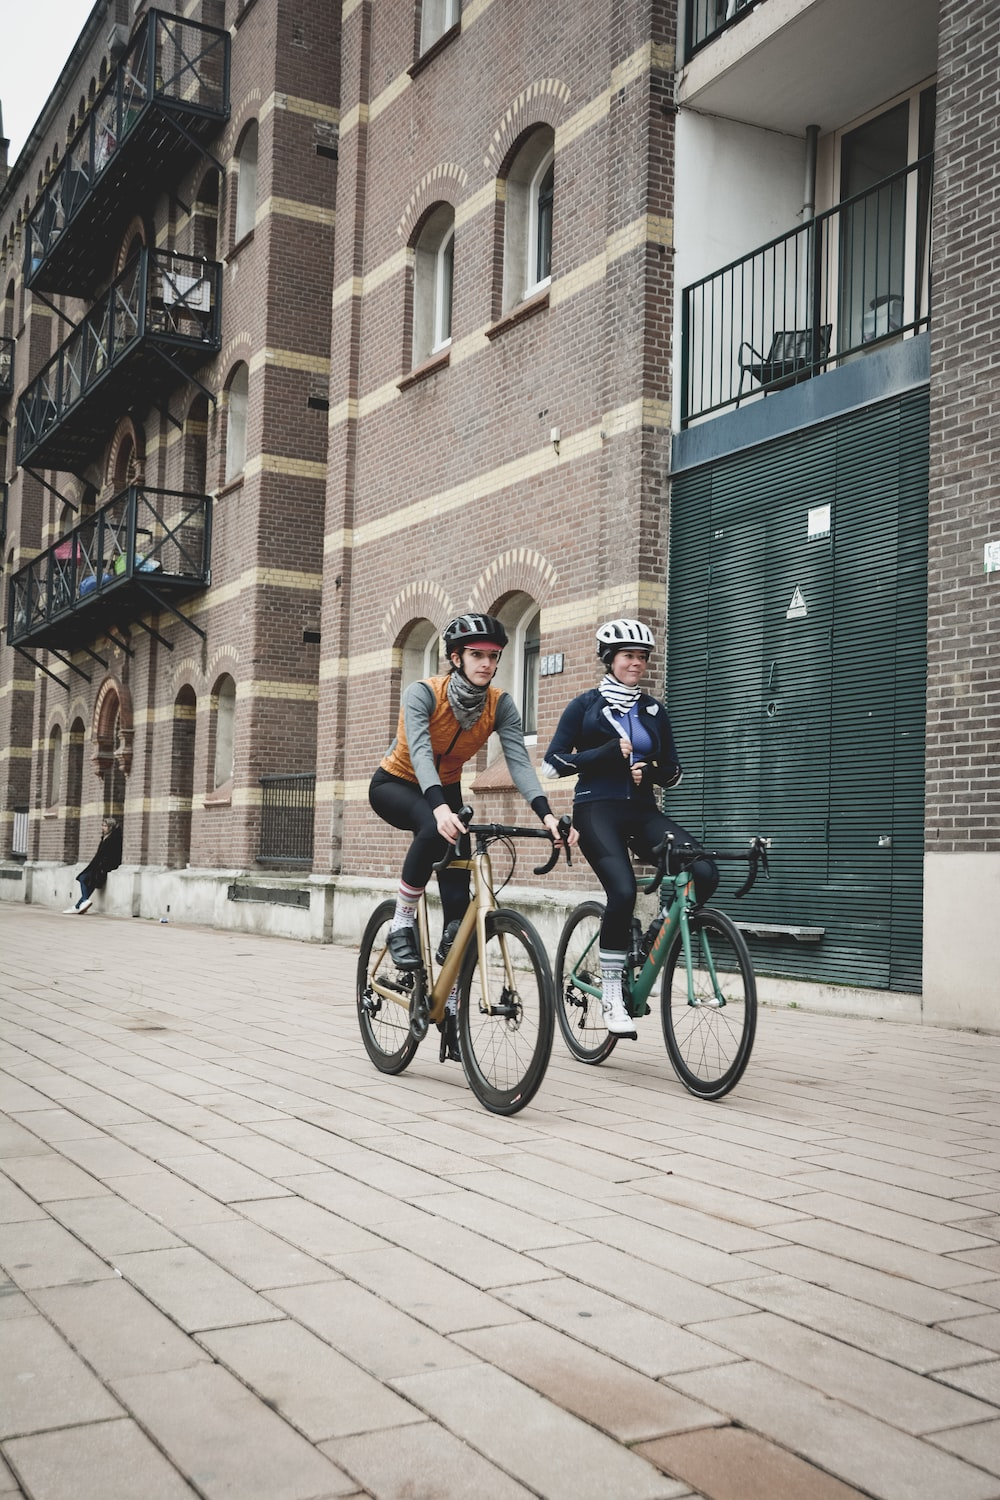 two person riding on bicycles beside building